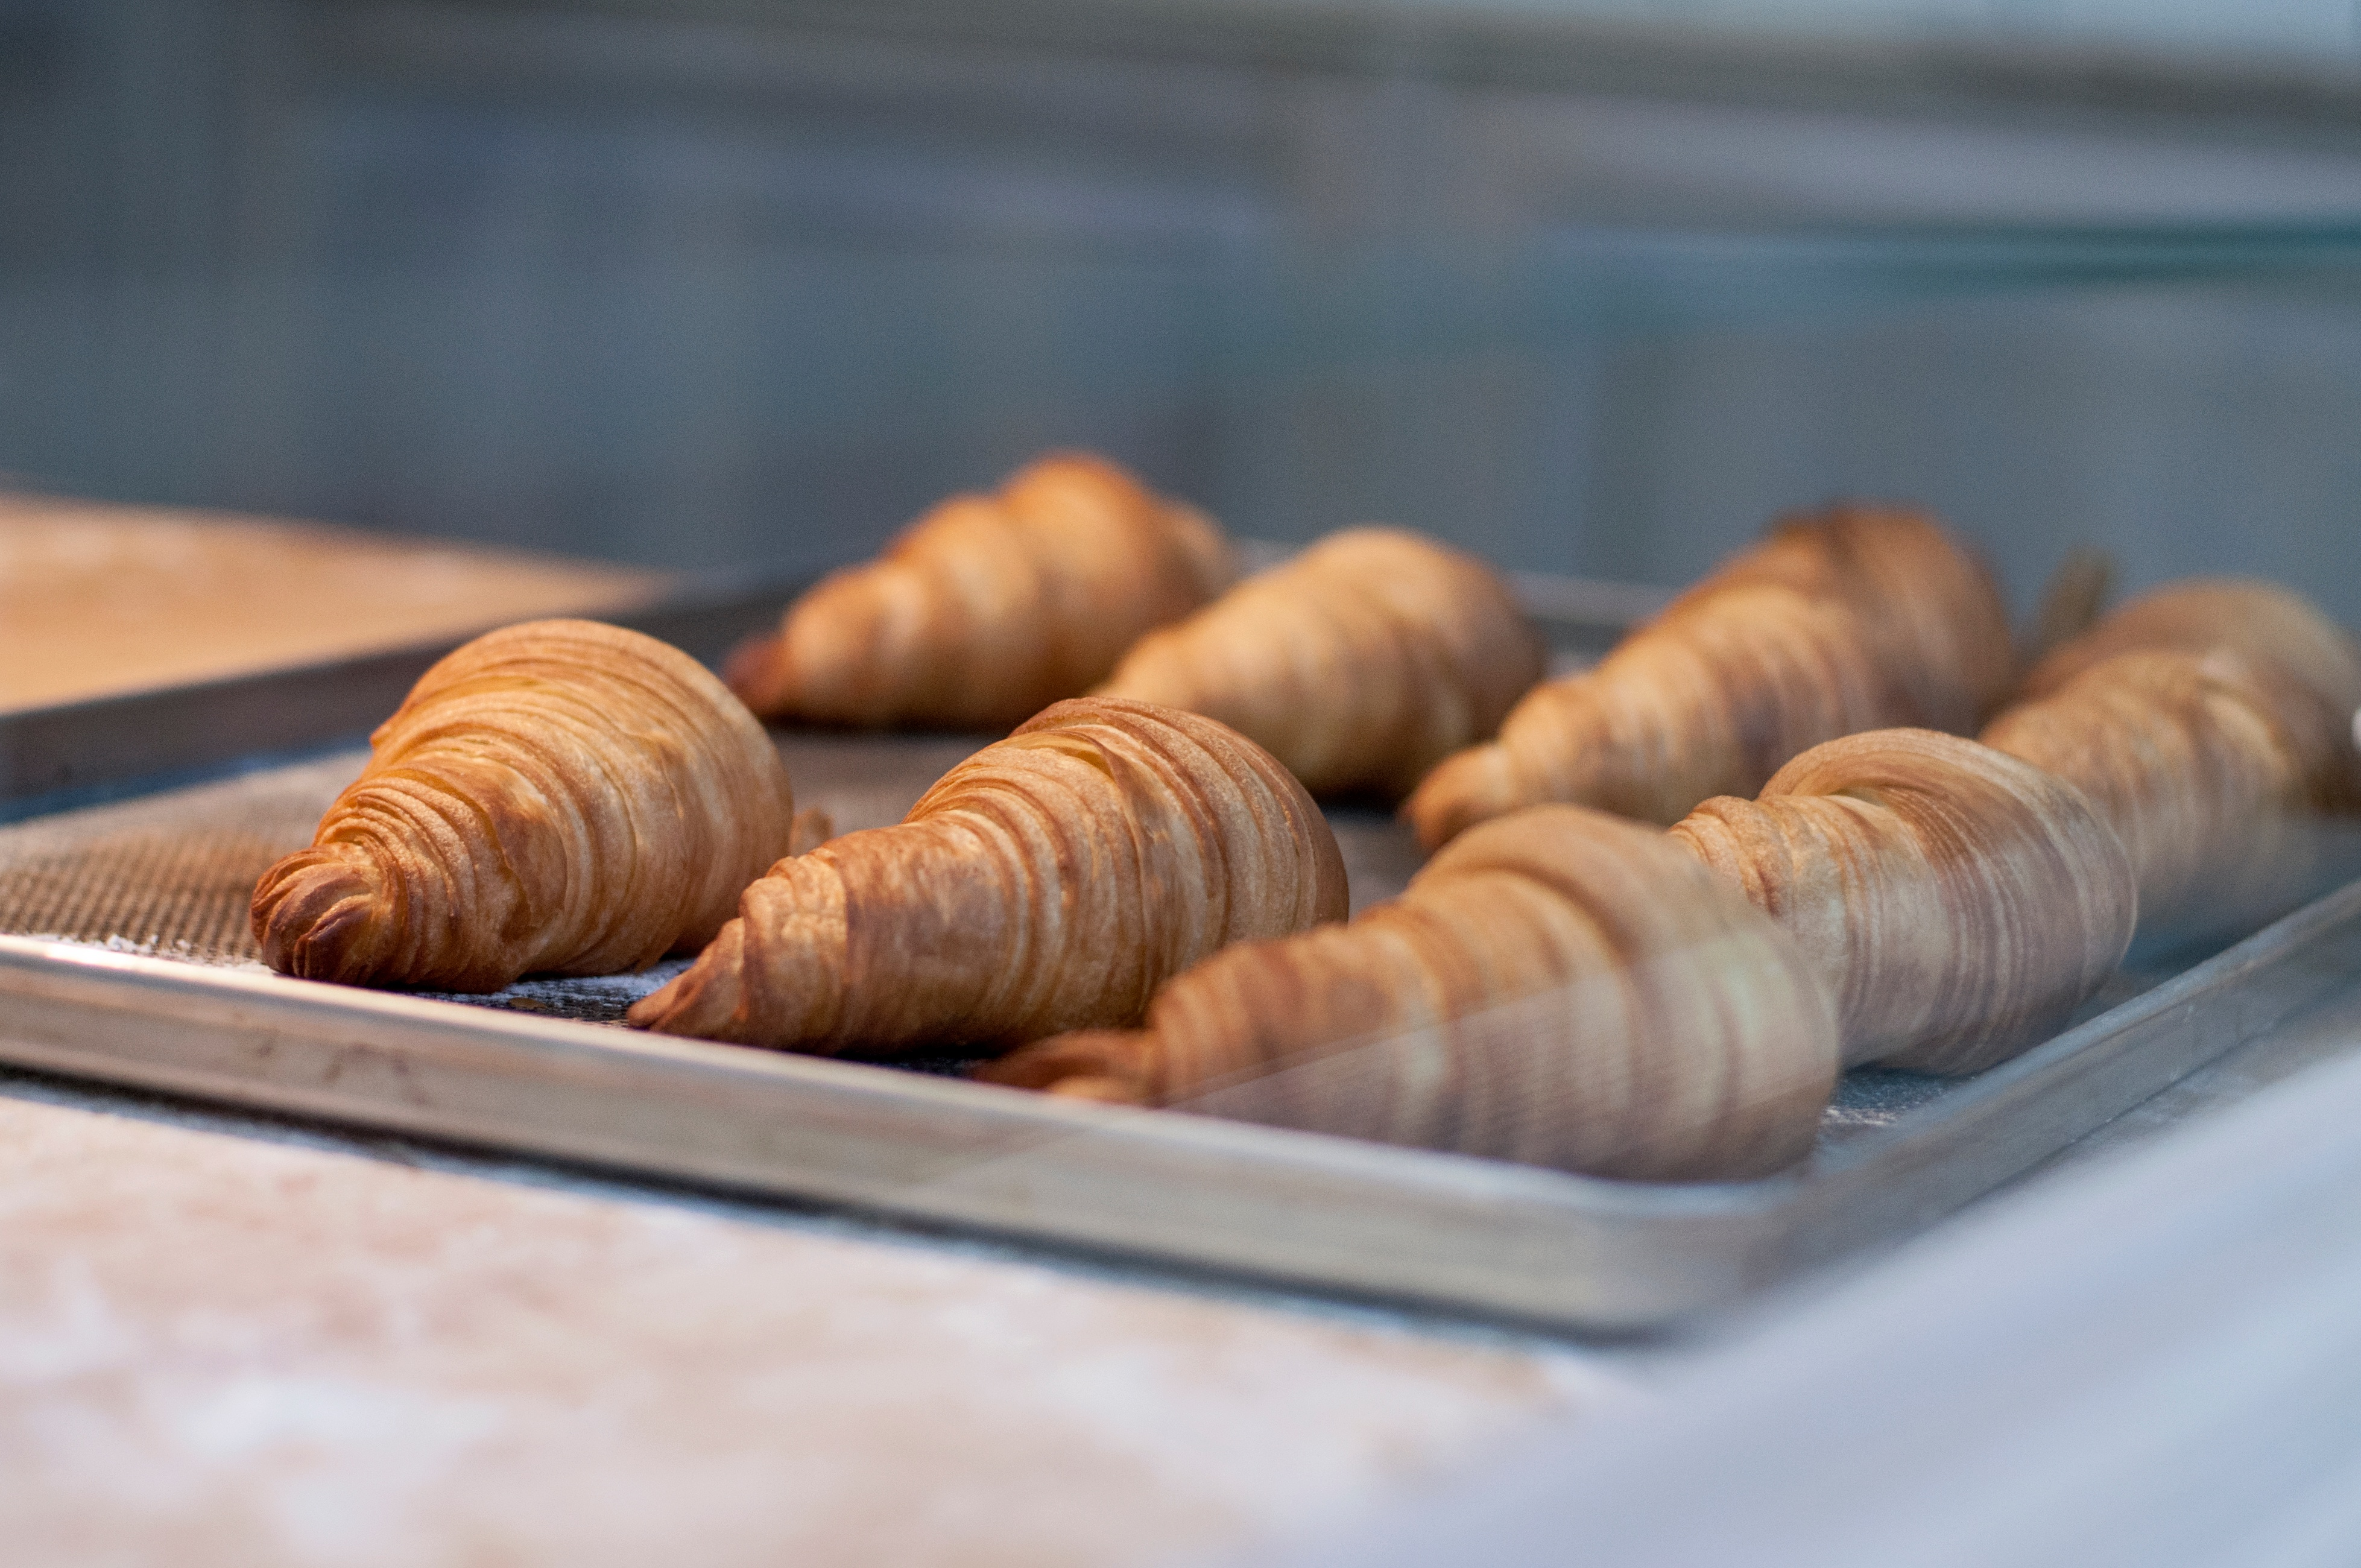 Croissants as part of French culture